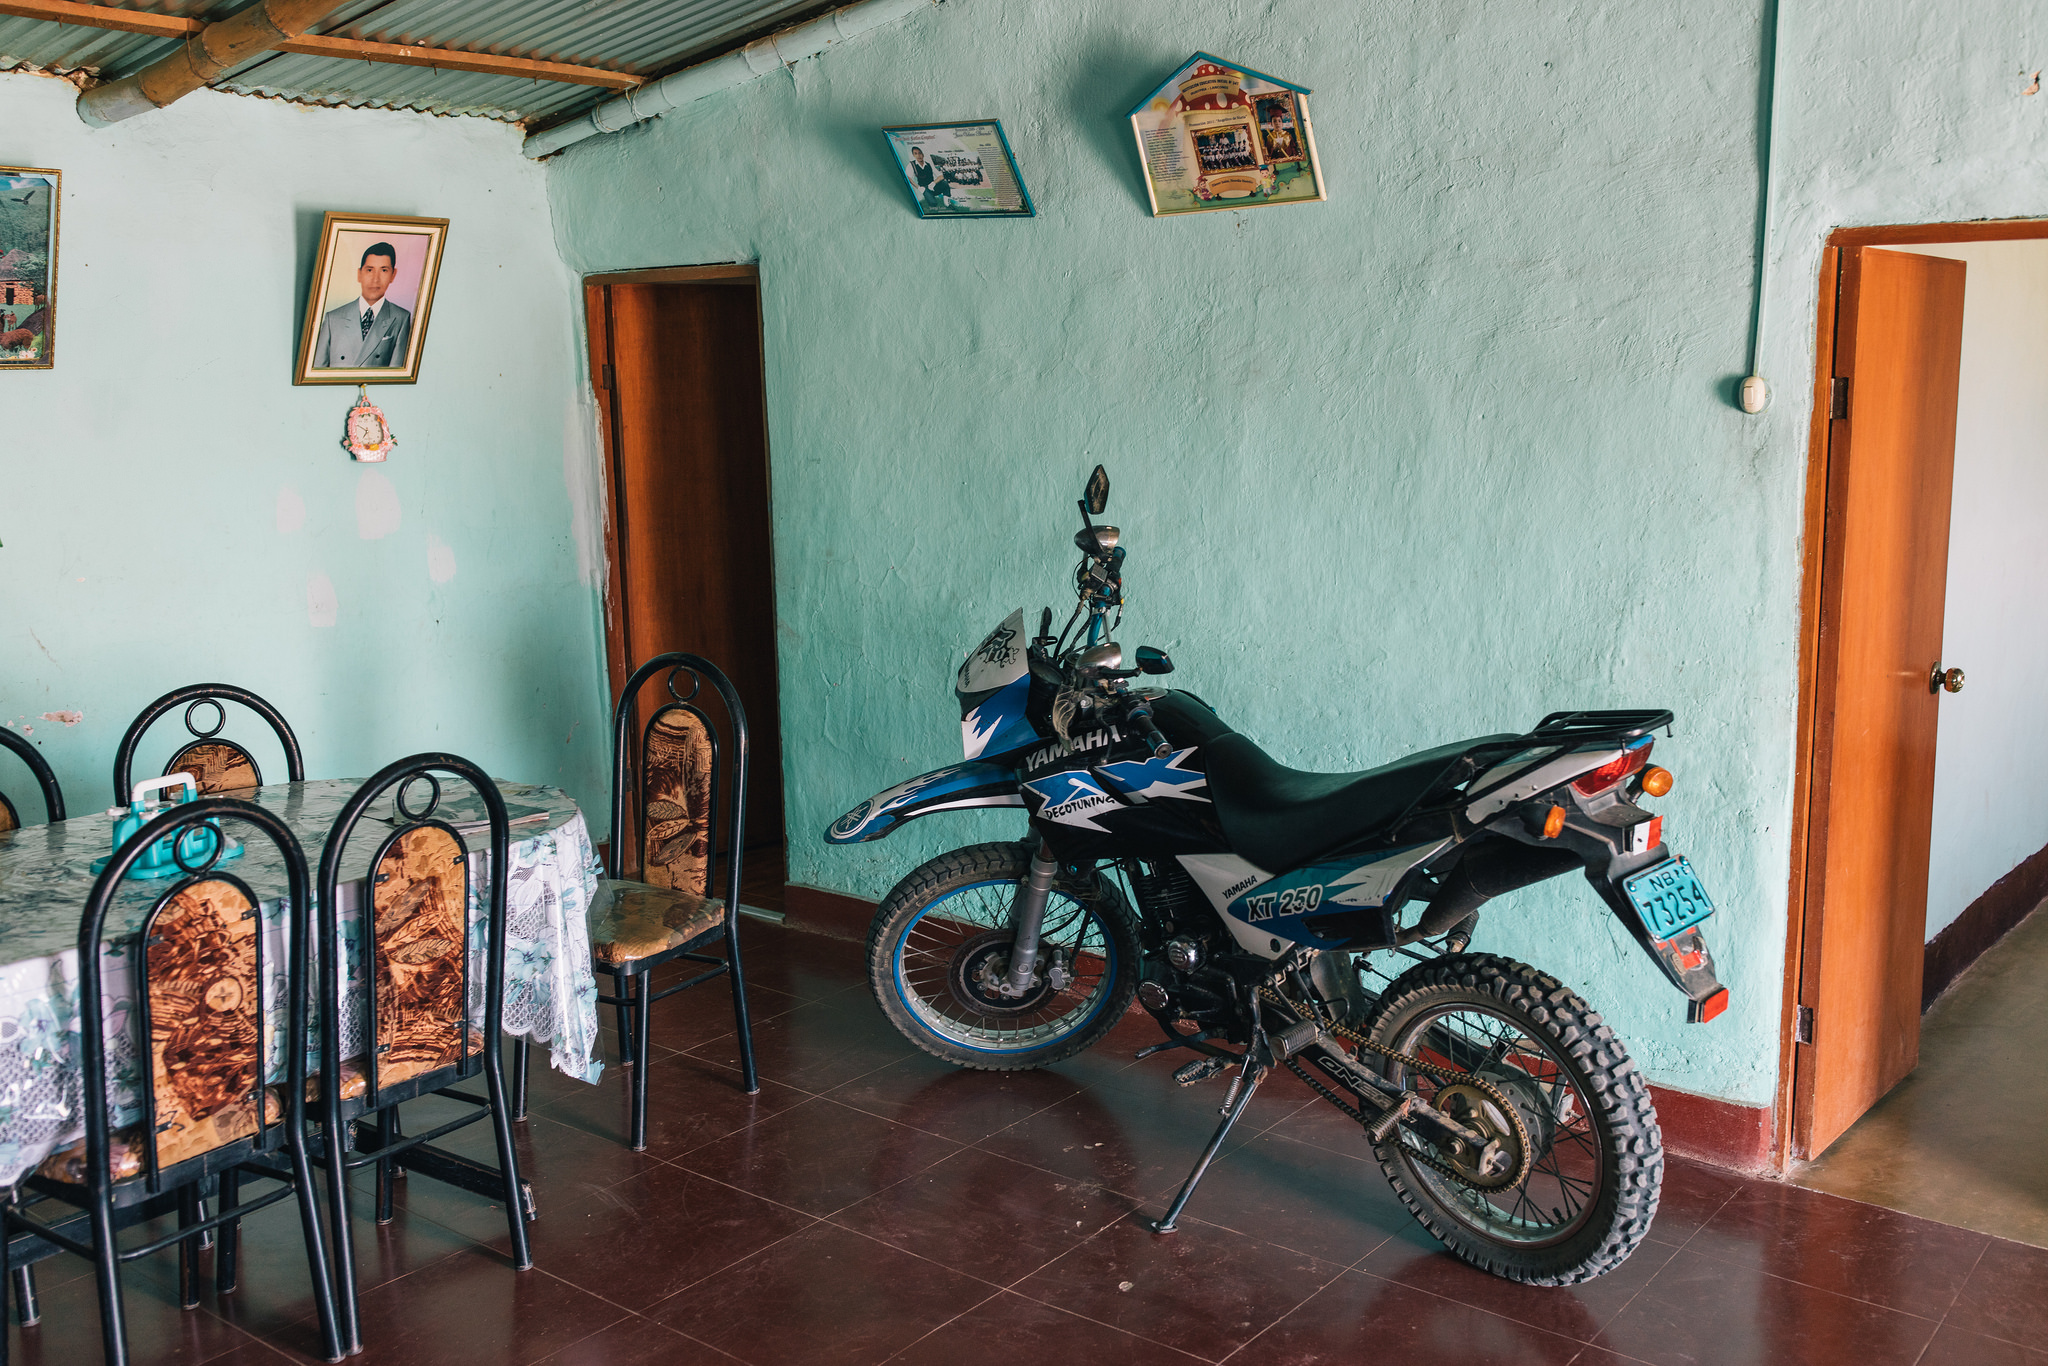 Elena's eldest son's motorcycle sits parked in the dining room, near her late husband's photo.